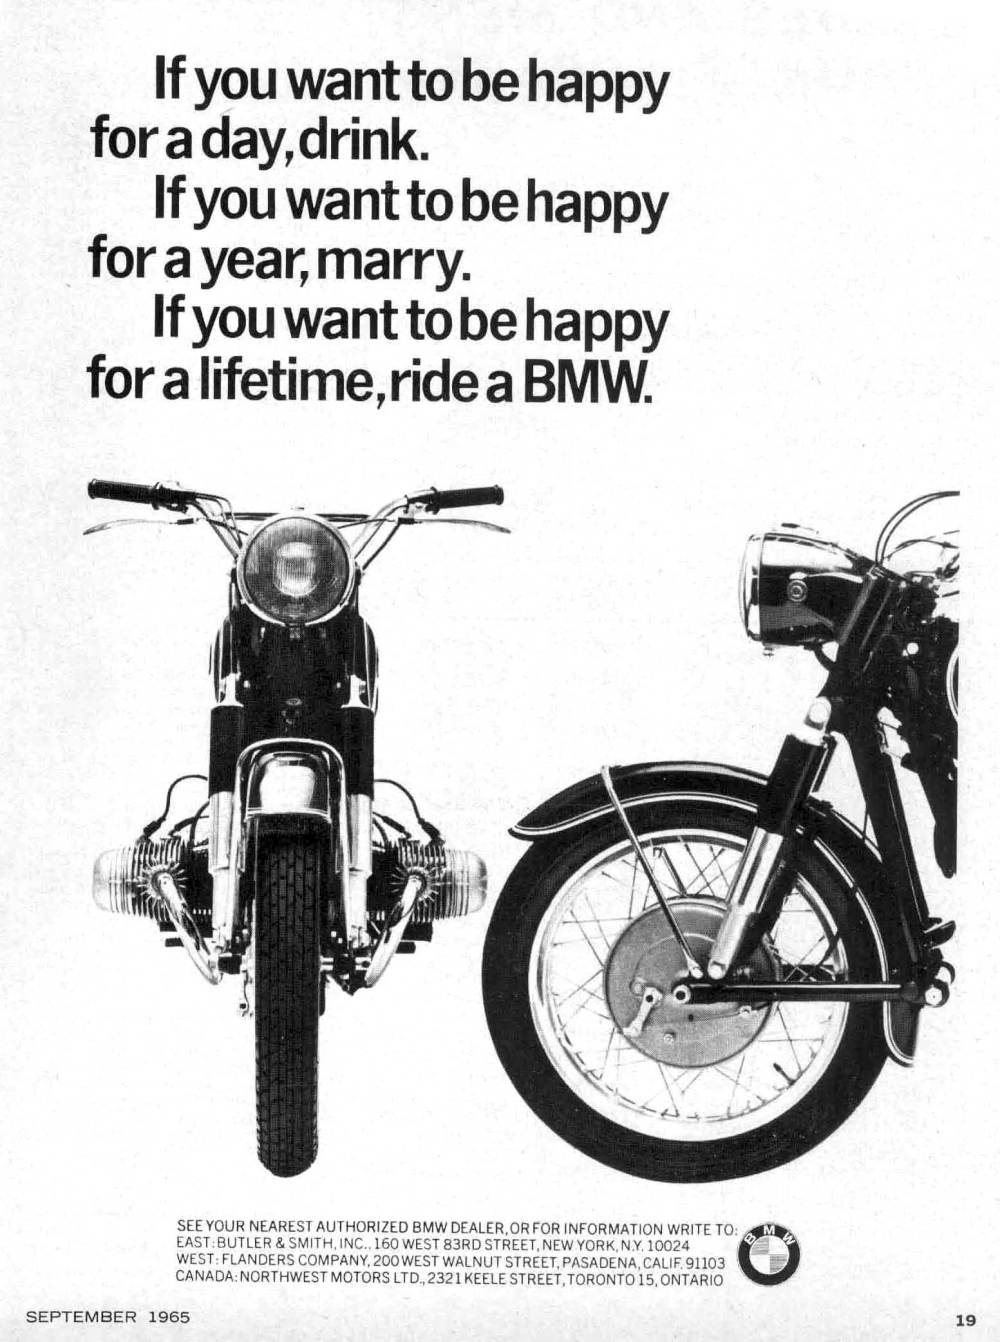 medium resolution of here is the famous 1965 bmw motorcycles happy for a lifetime advertisement